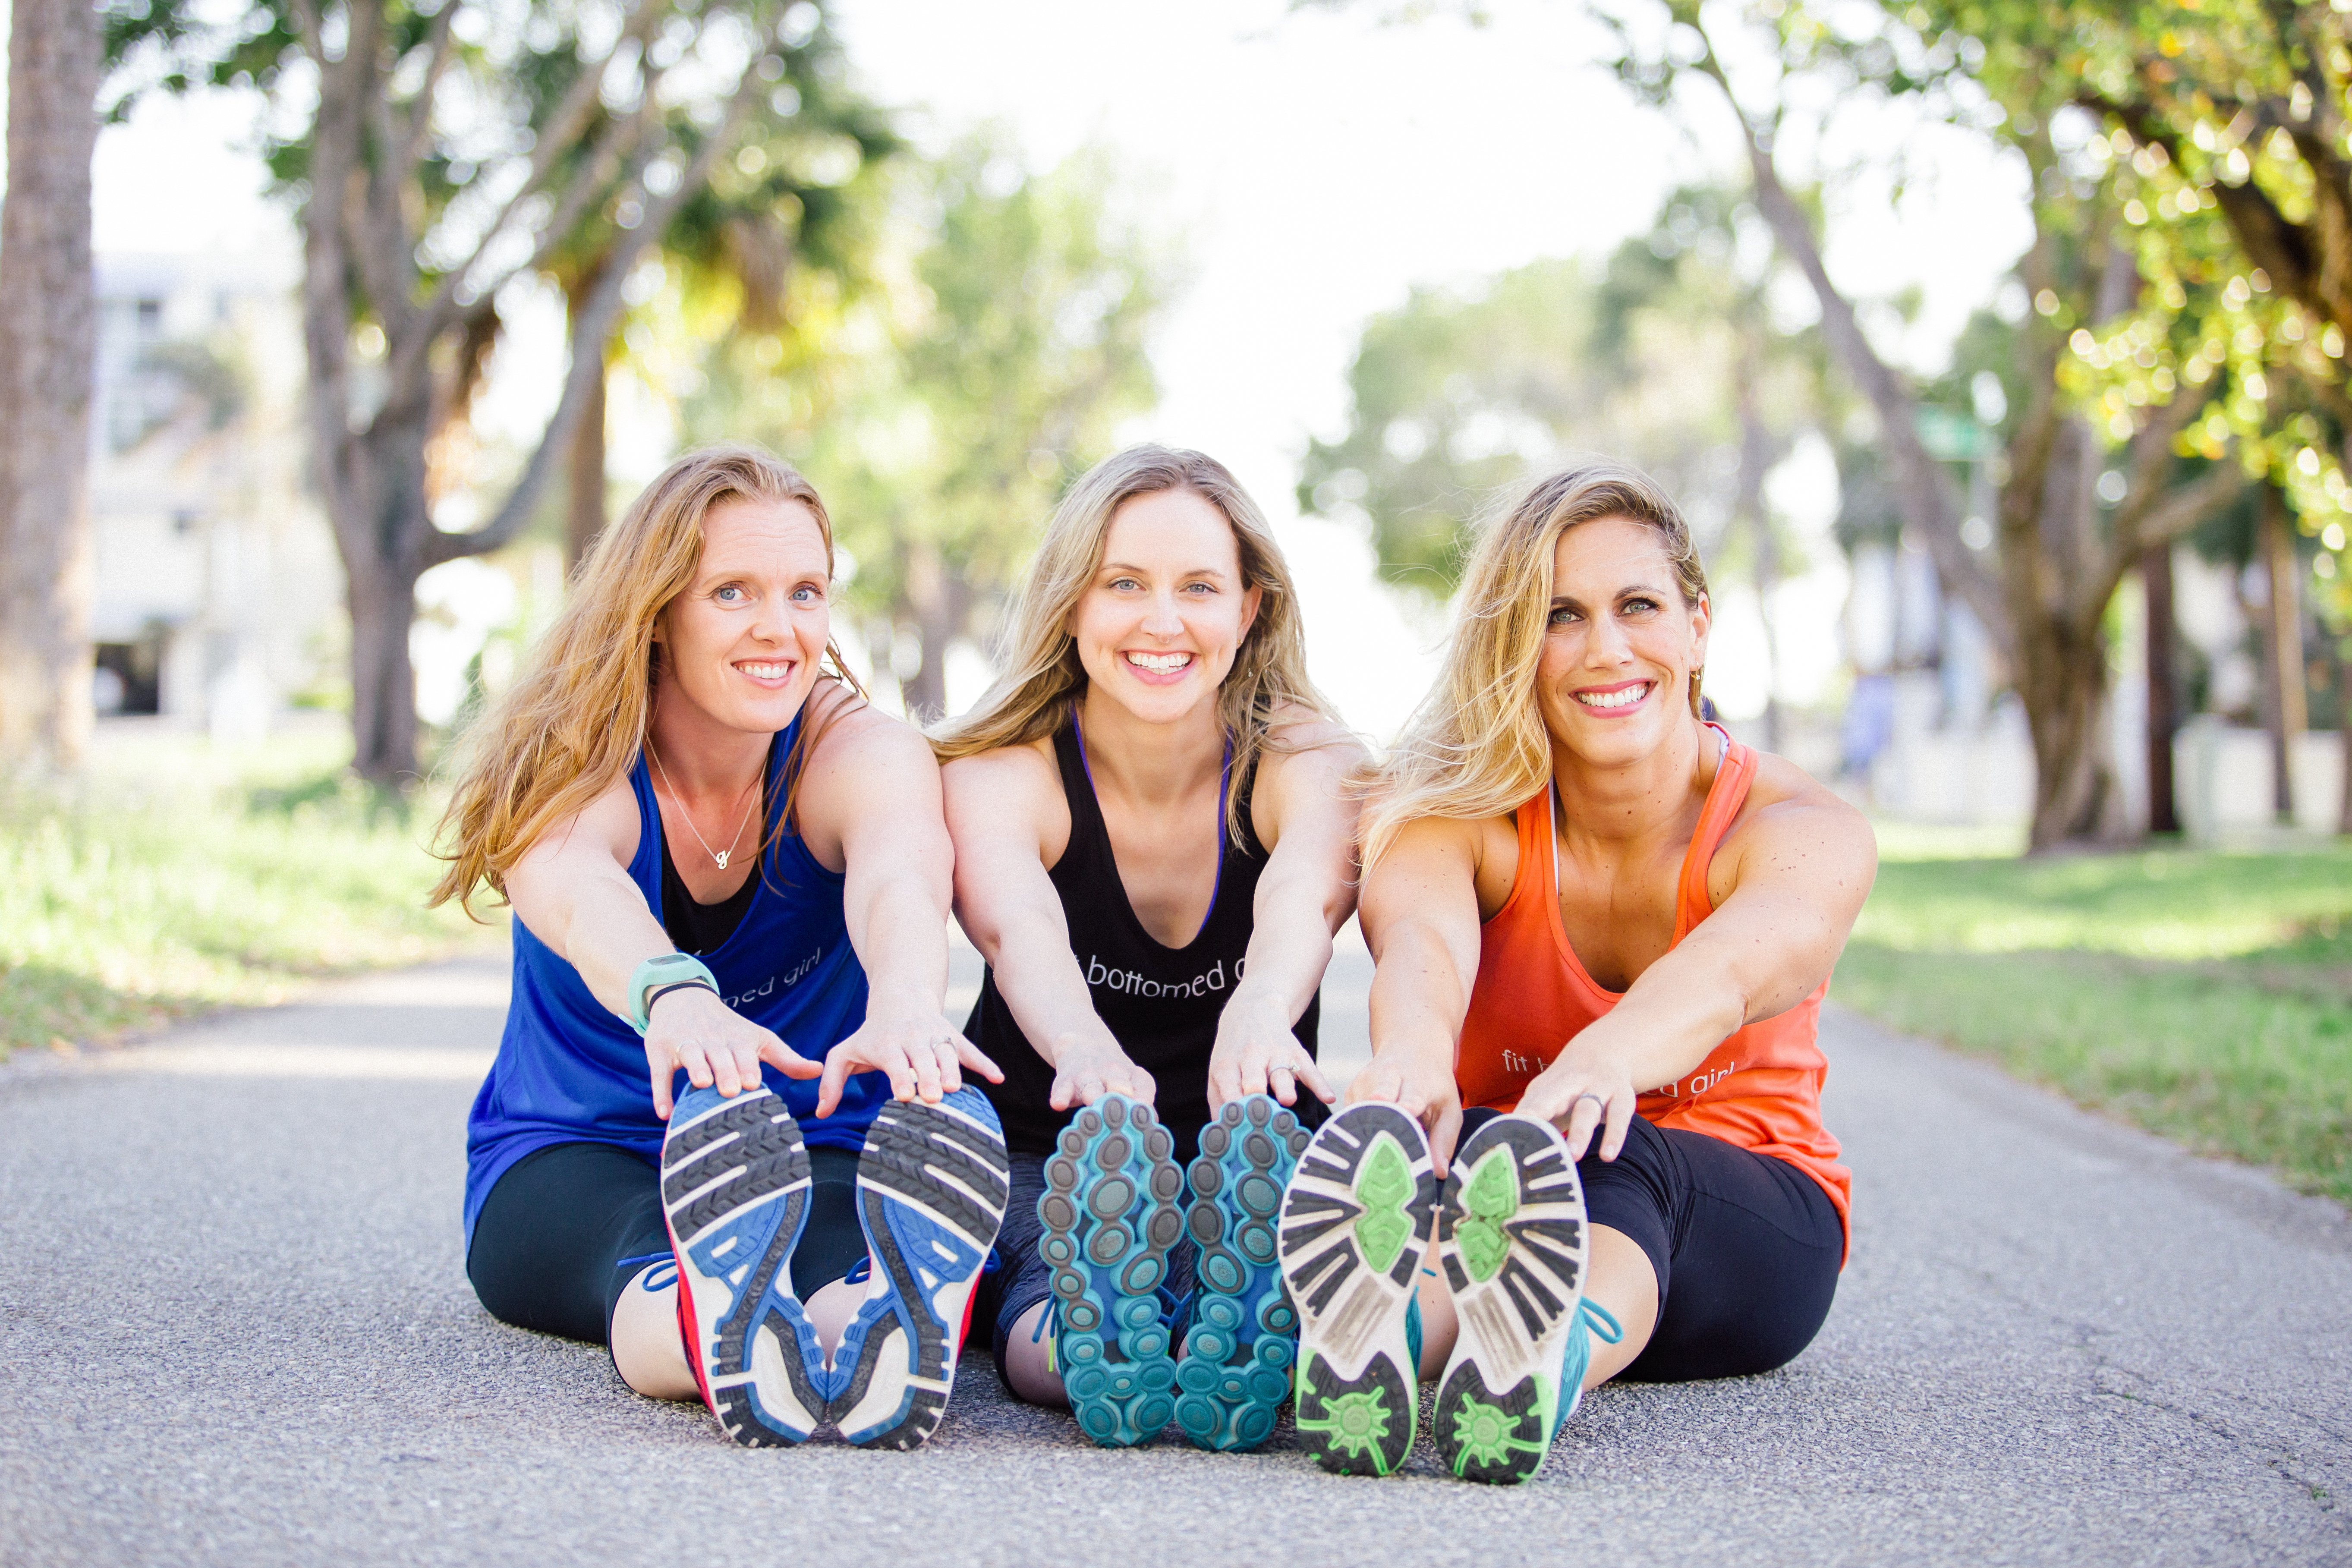 The girls from Fit Bottomed Girls talk about wellness, fitness, and more on the KR Edit